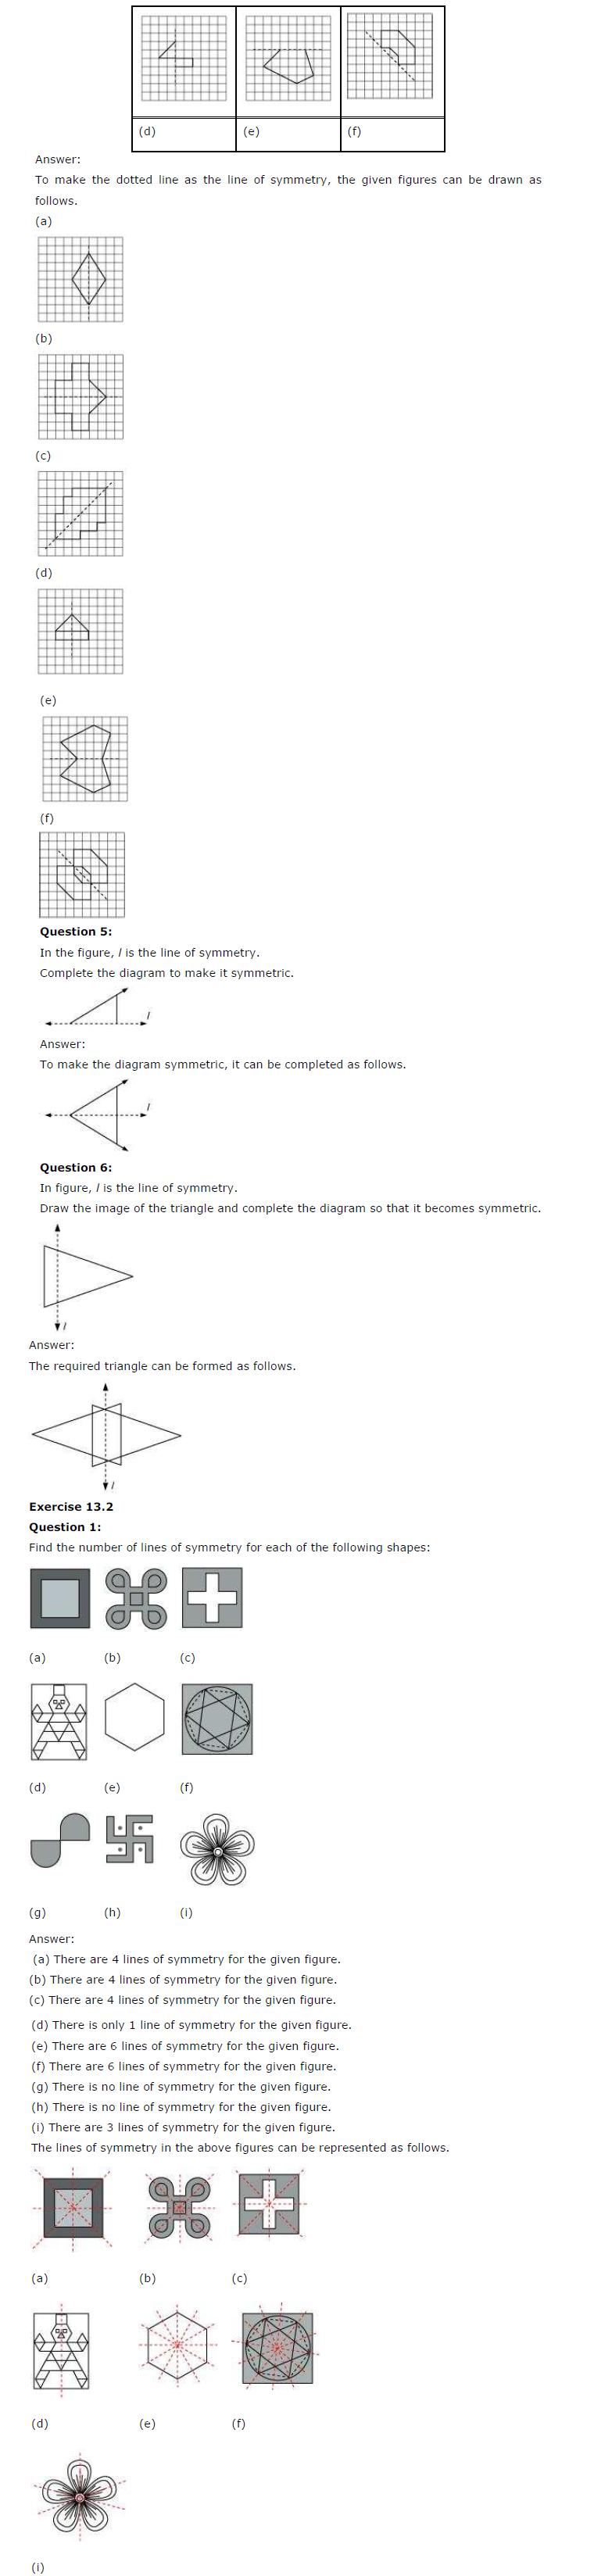 NCERT Solutions for Class 6 Maths Chapter 13 – Symmetry | AglaSem ...